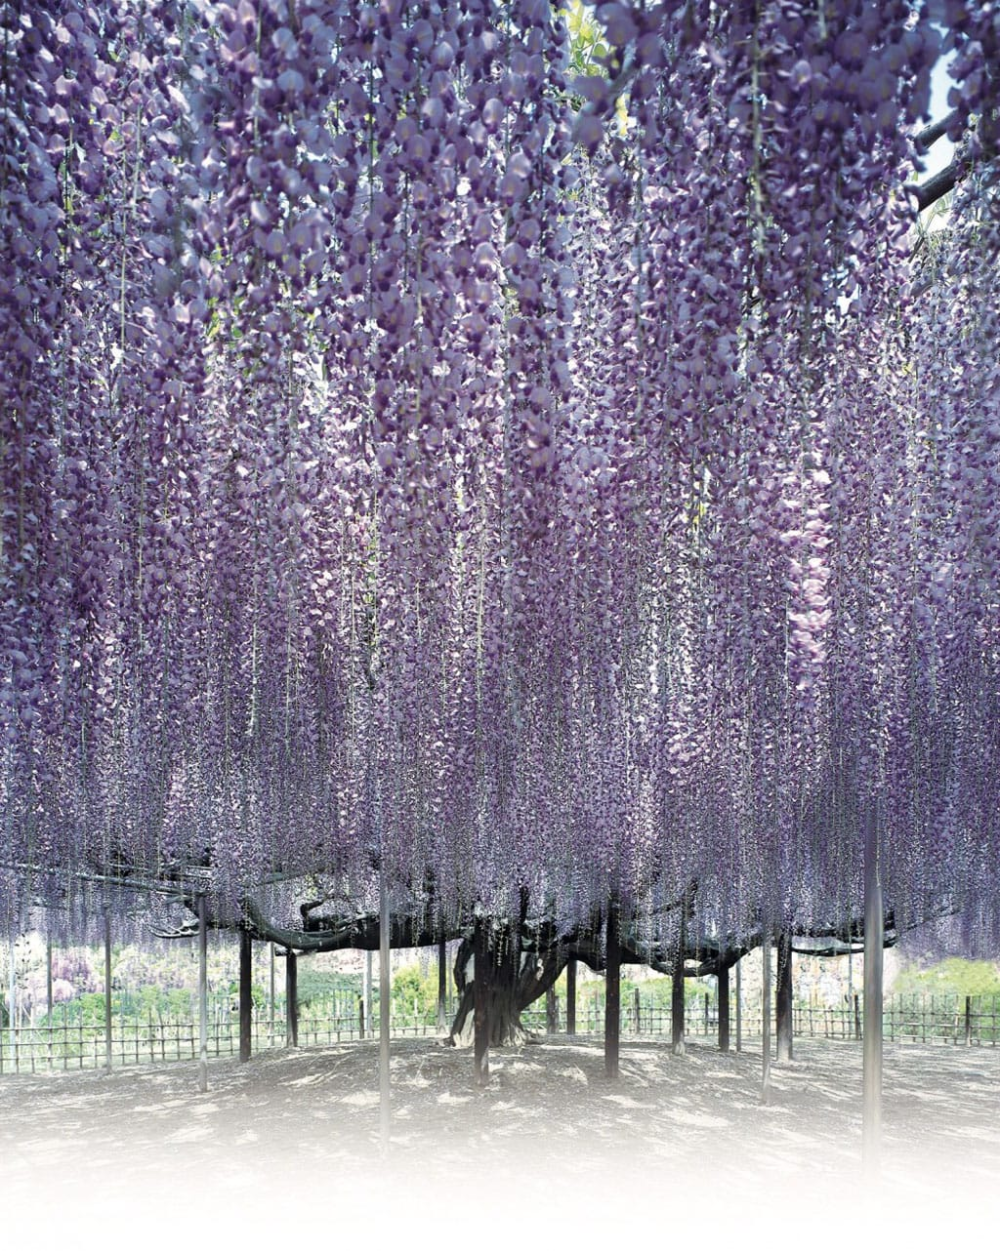 Ashikaga Flower Park In Tochigi A Dream Destination Near Tokyo Matcha Japan Travel Web Magazine In 2020 Ashikaga Wisteria Flower Garden